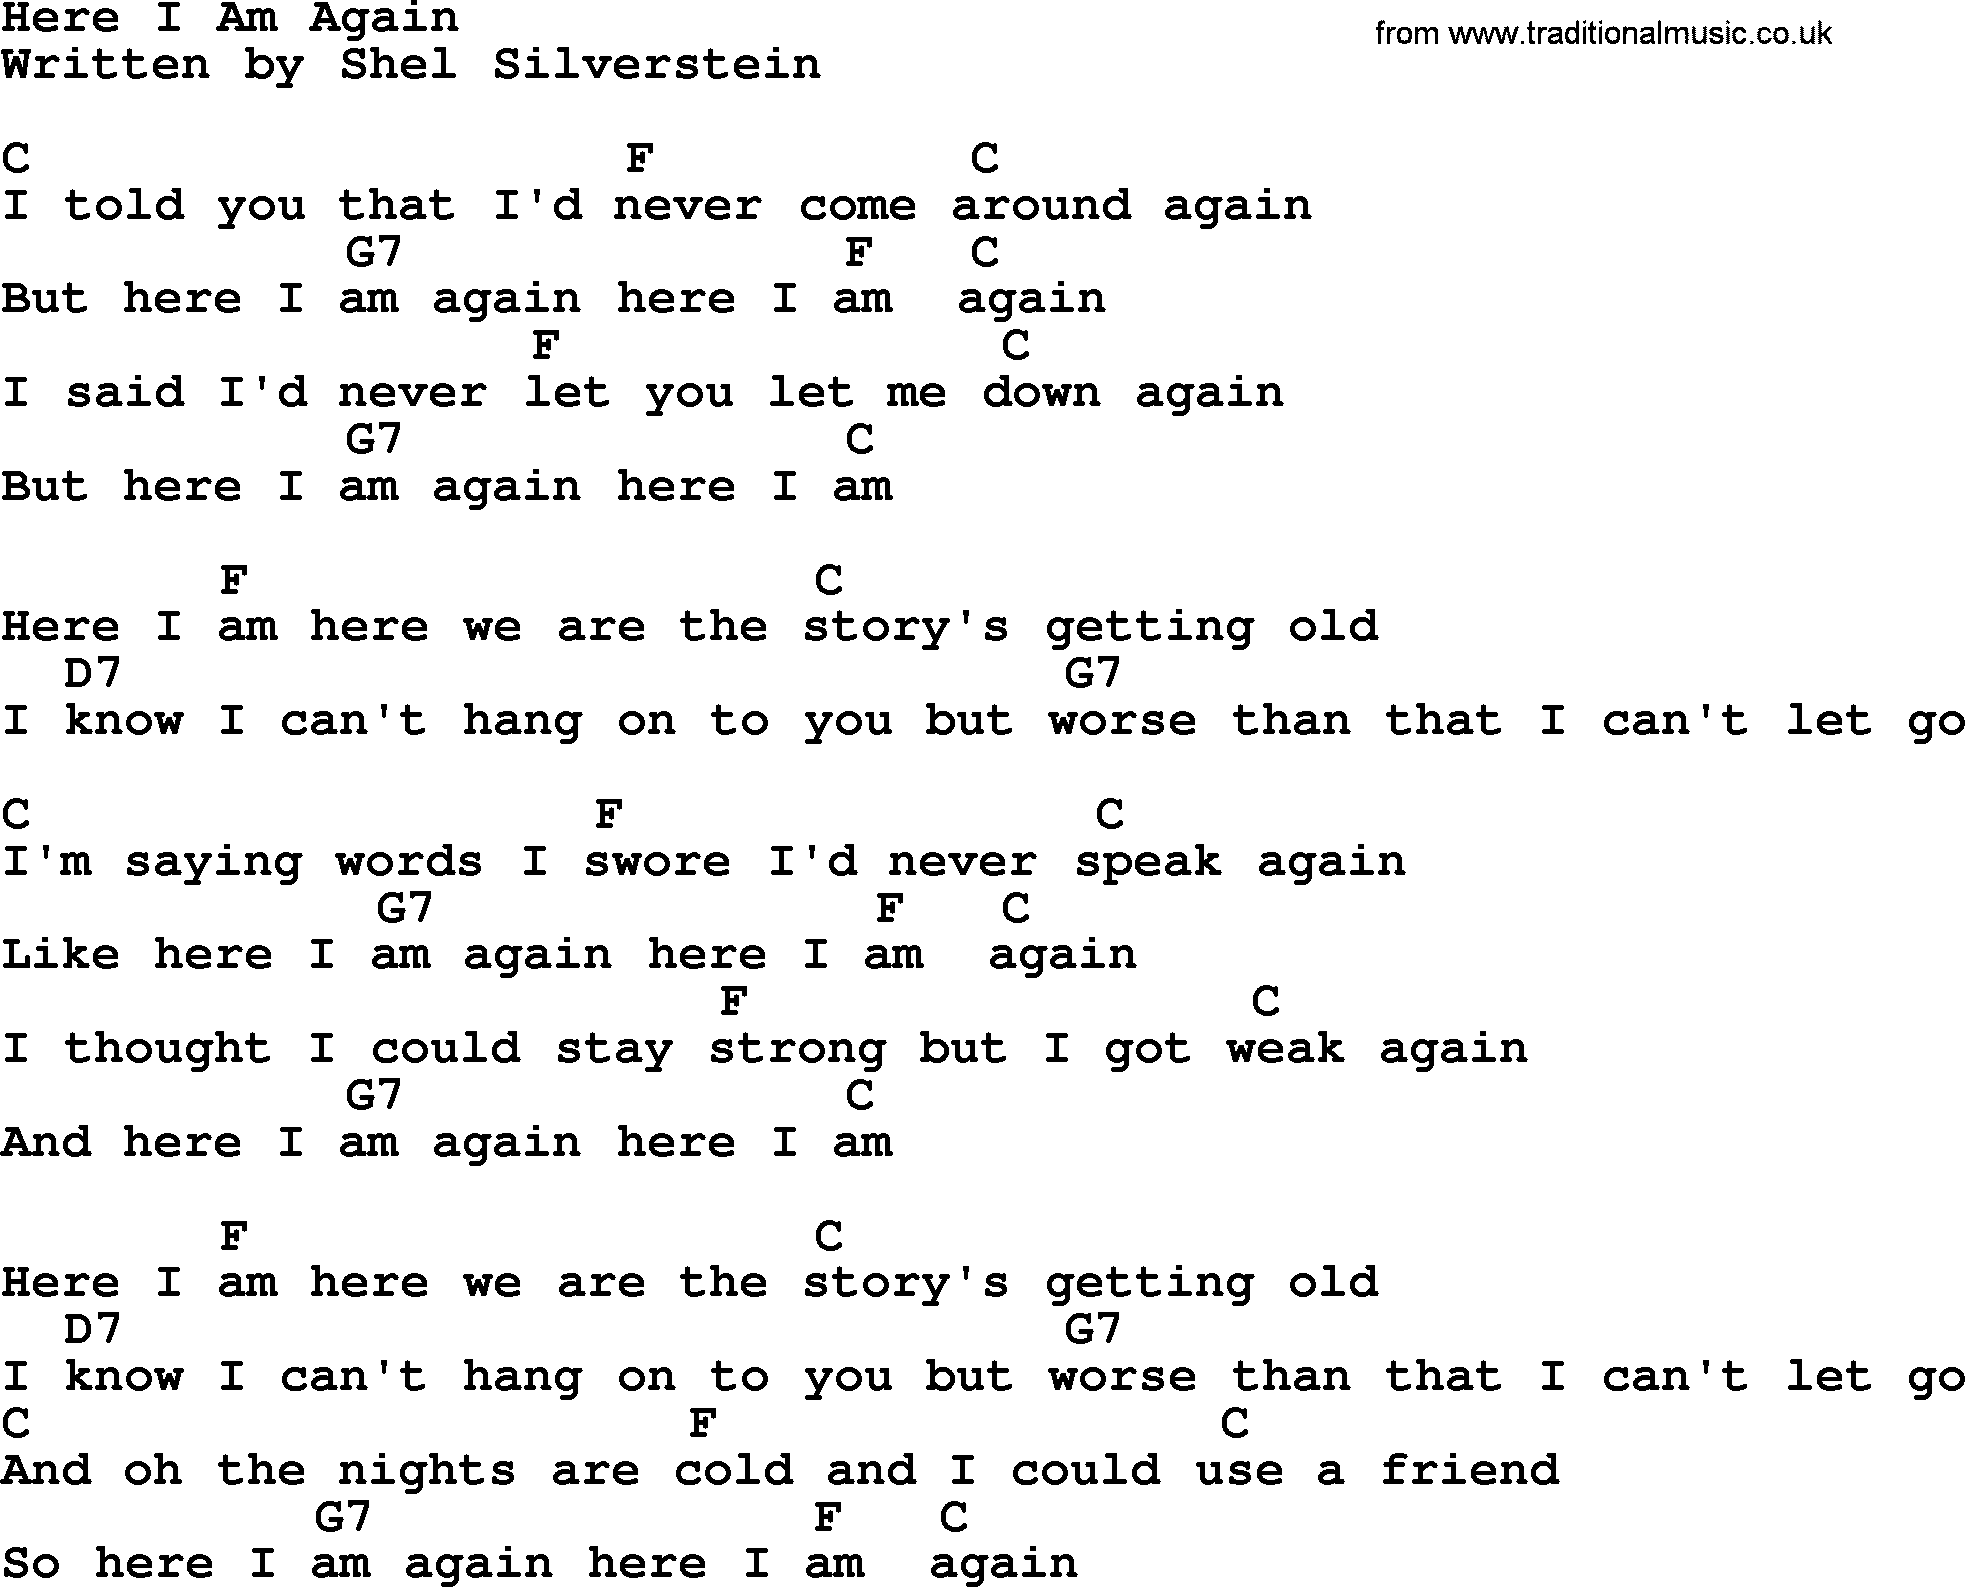 Loretta Lynn song: Here I Am Again, lyrics and chords